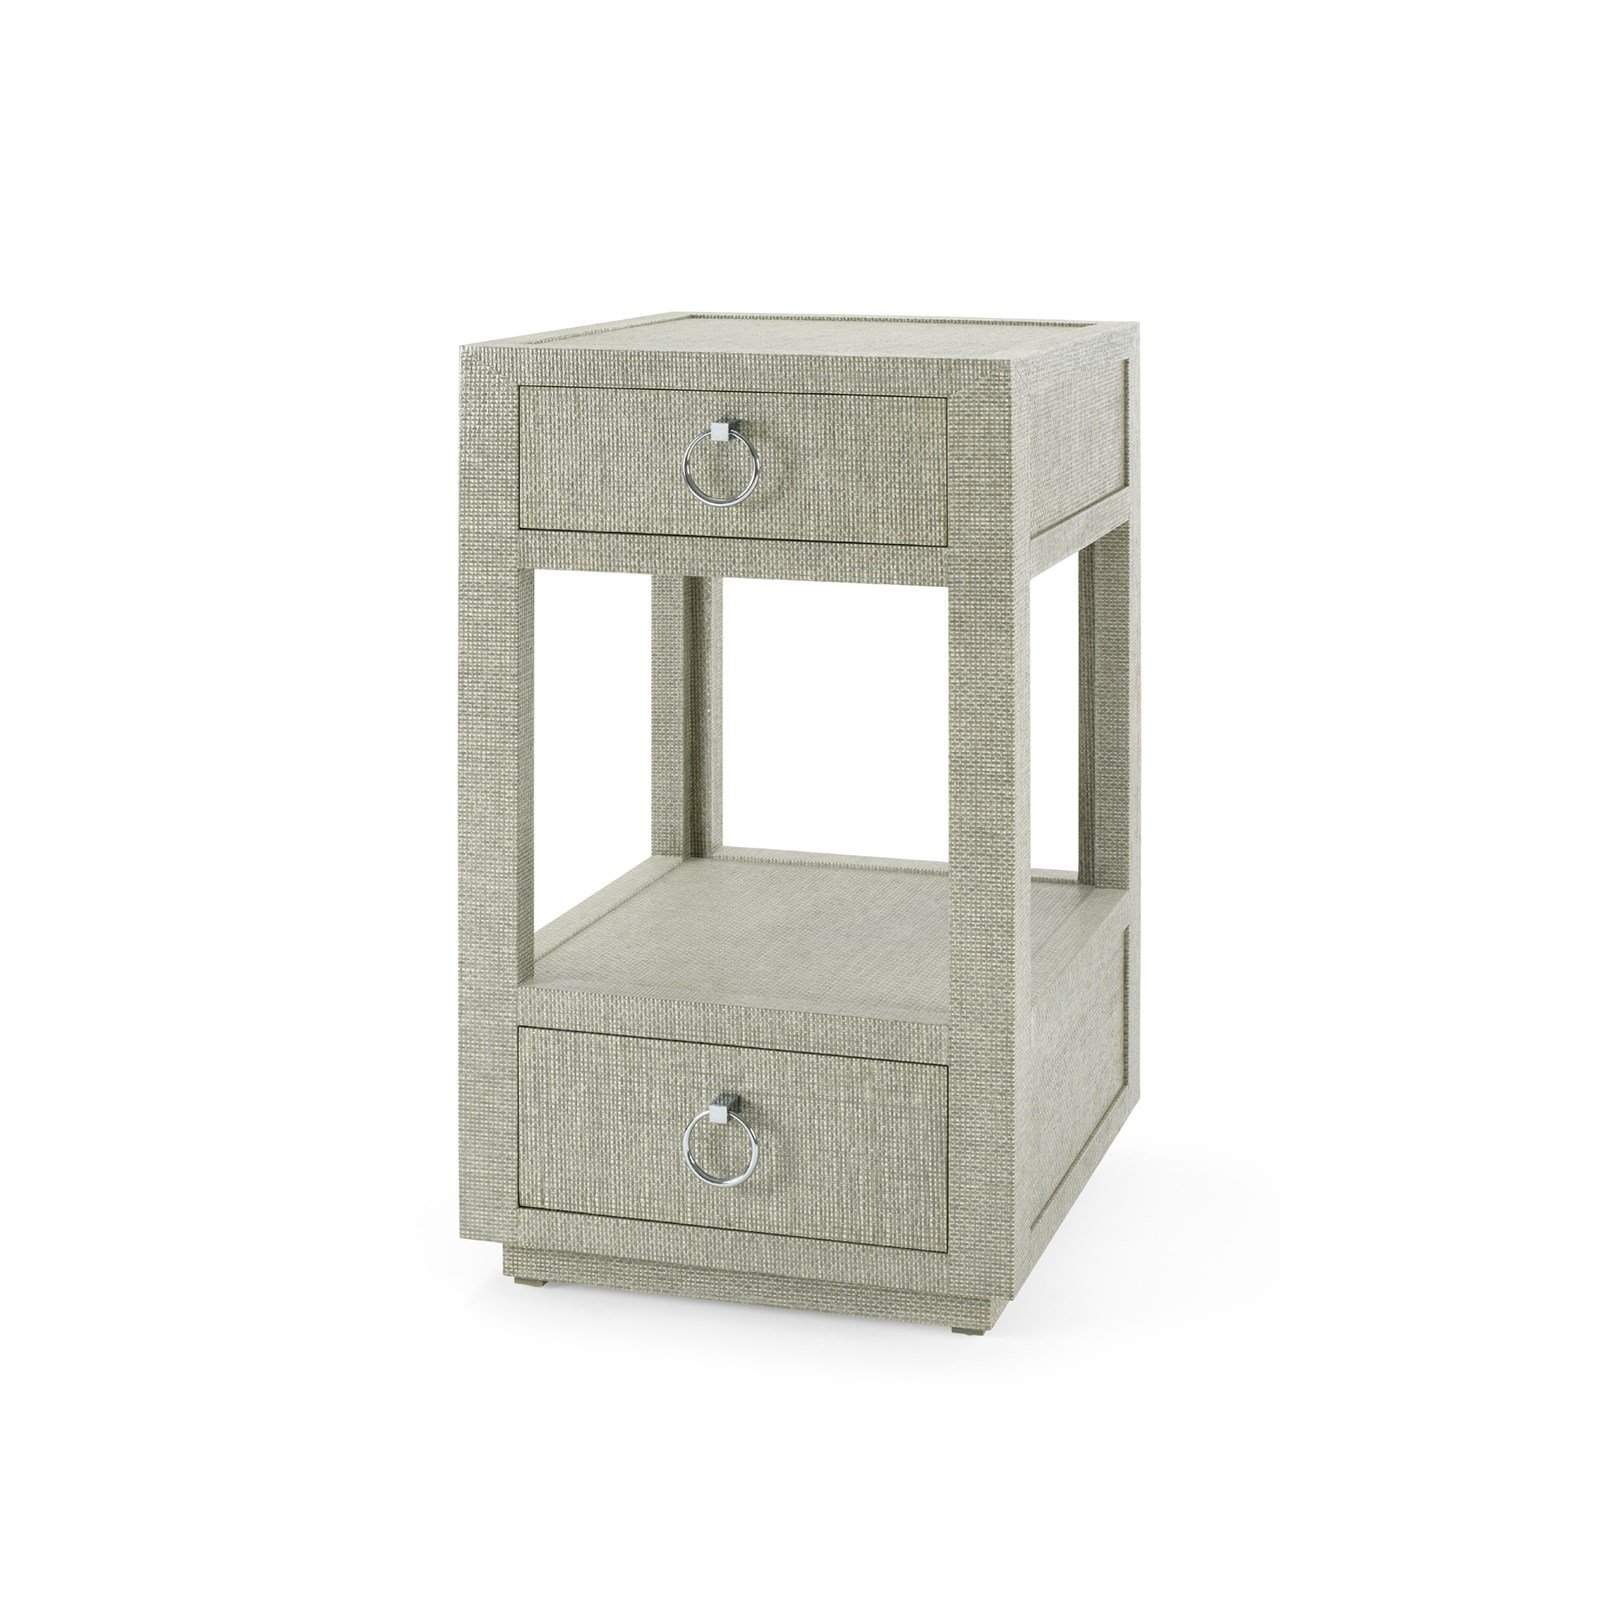 Bungalow 5 - CAMILLA 2-DRAWER SIDE TABLE in MOSS GRAY TWEED-Bungalow 5-Blue Hand Home